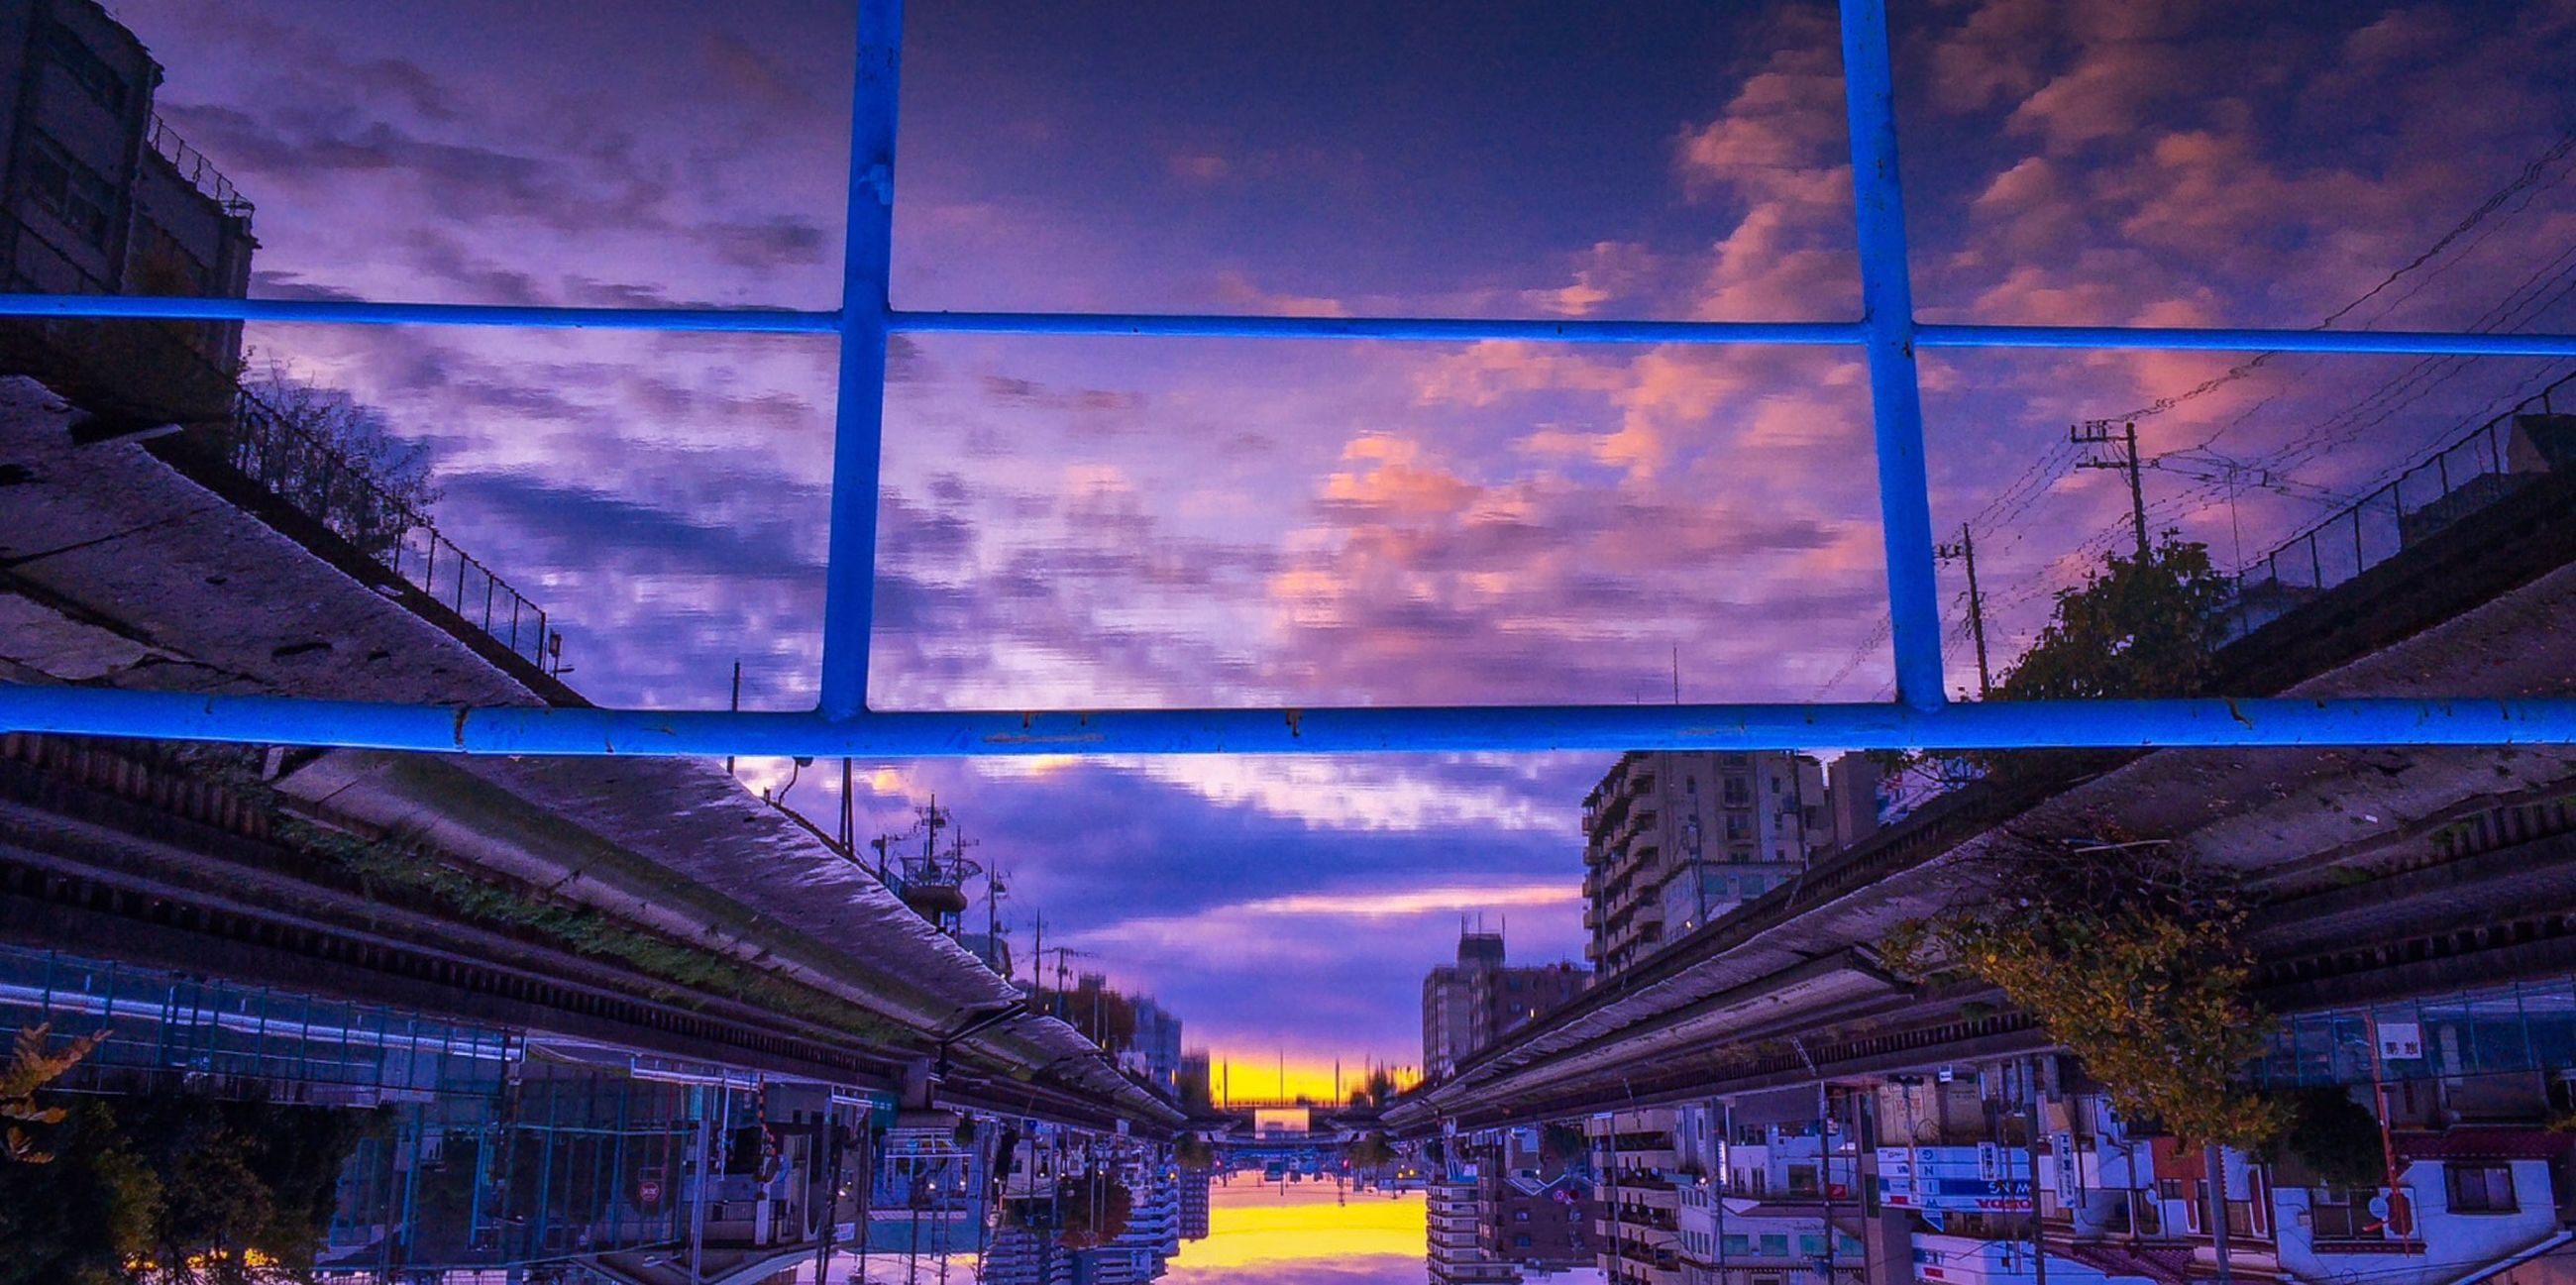 sky, architecture, built structure, building exterior, cloud - sky, cloud, cloudy, reflection, blue, weather, residential structure, window, house, residential building, glass - material, city, low angle view, tree, no people, building